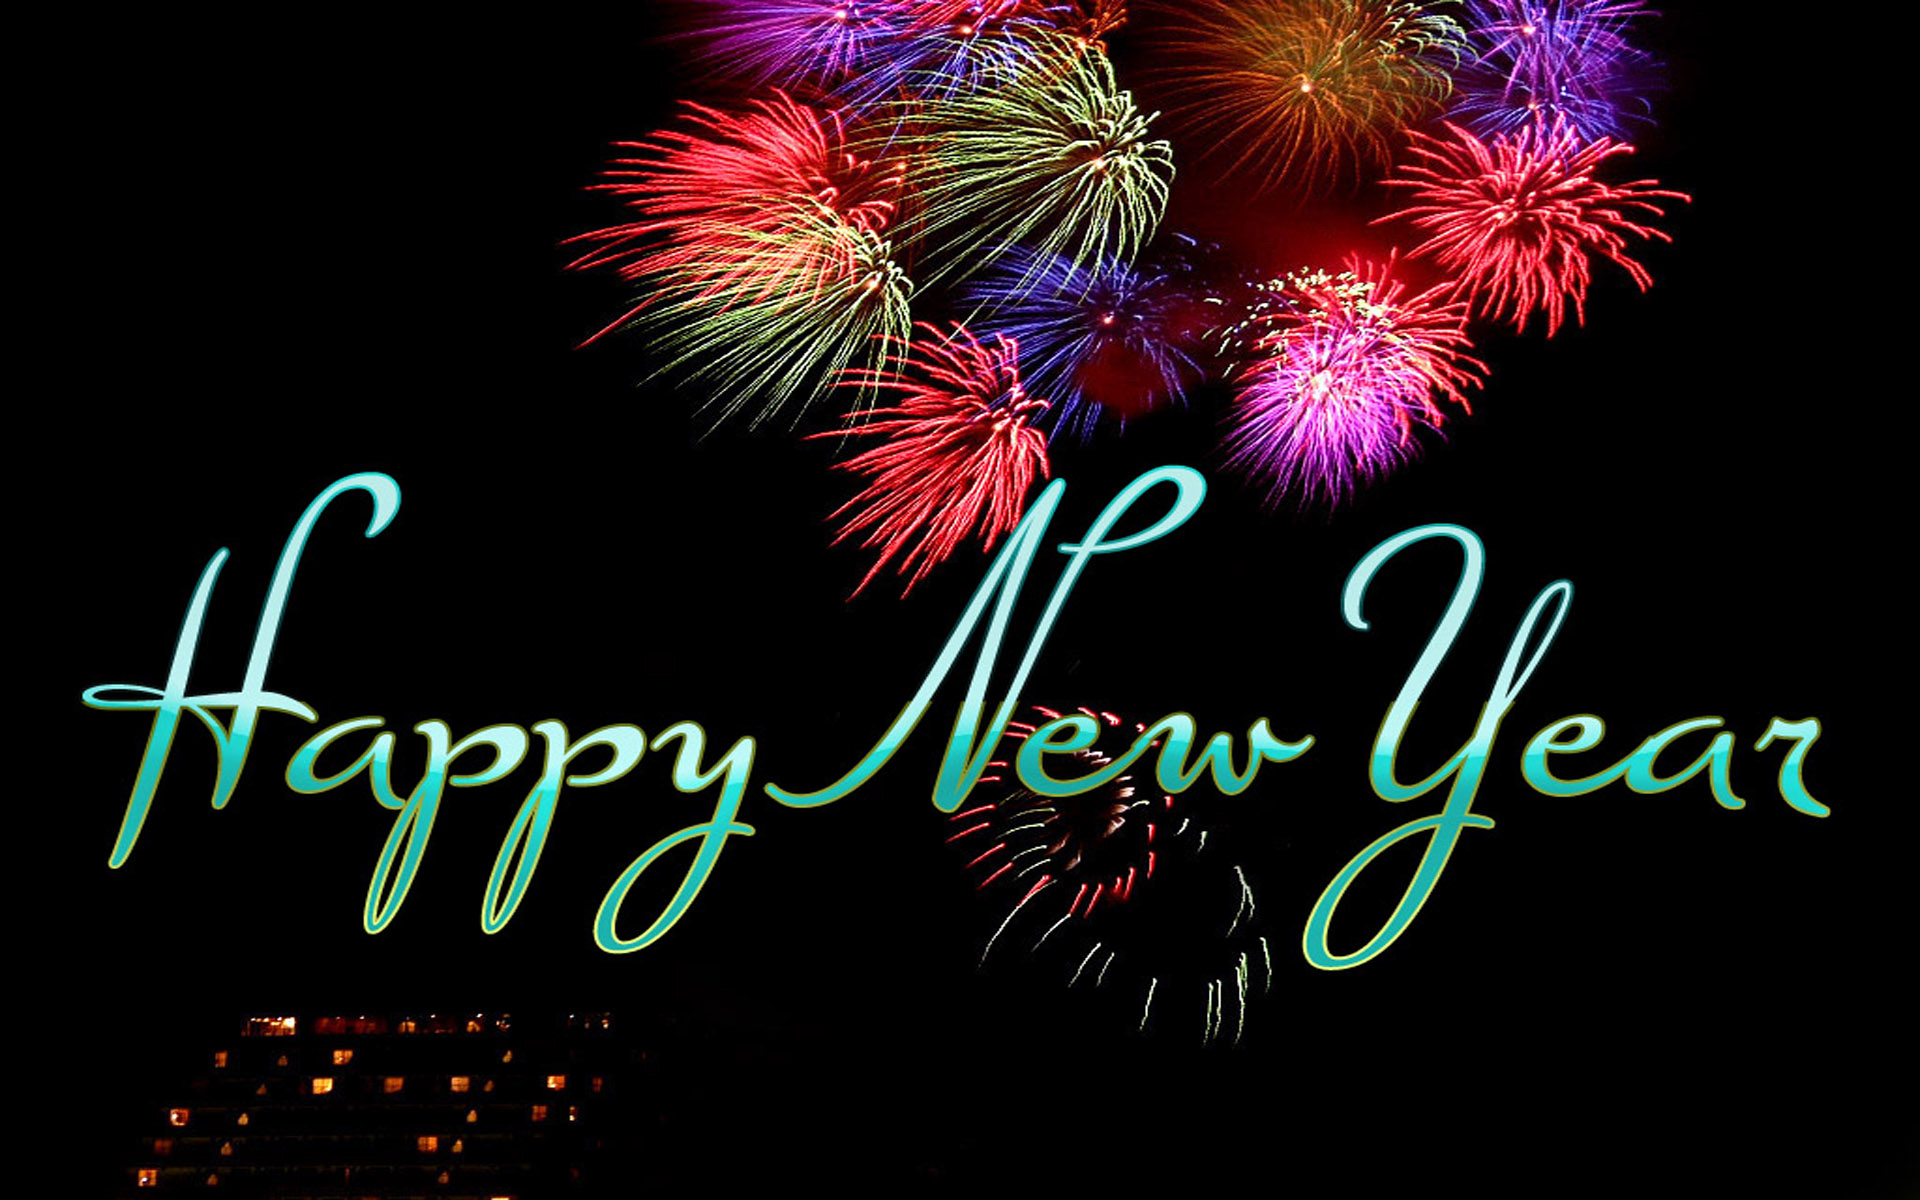 happy new year wishes hd wallpaper